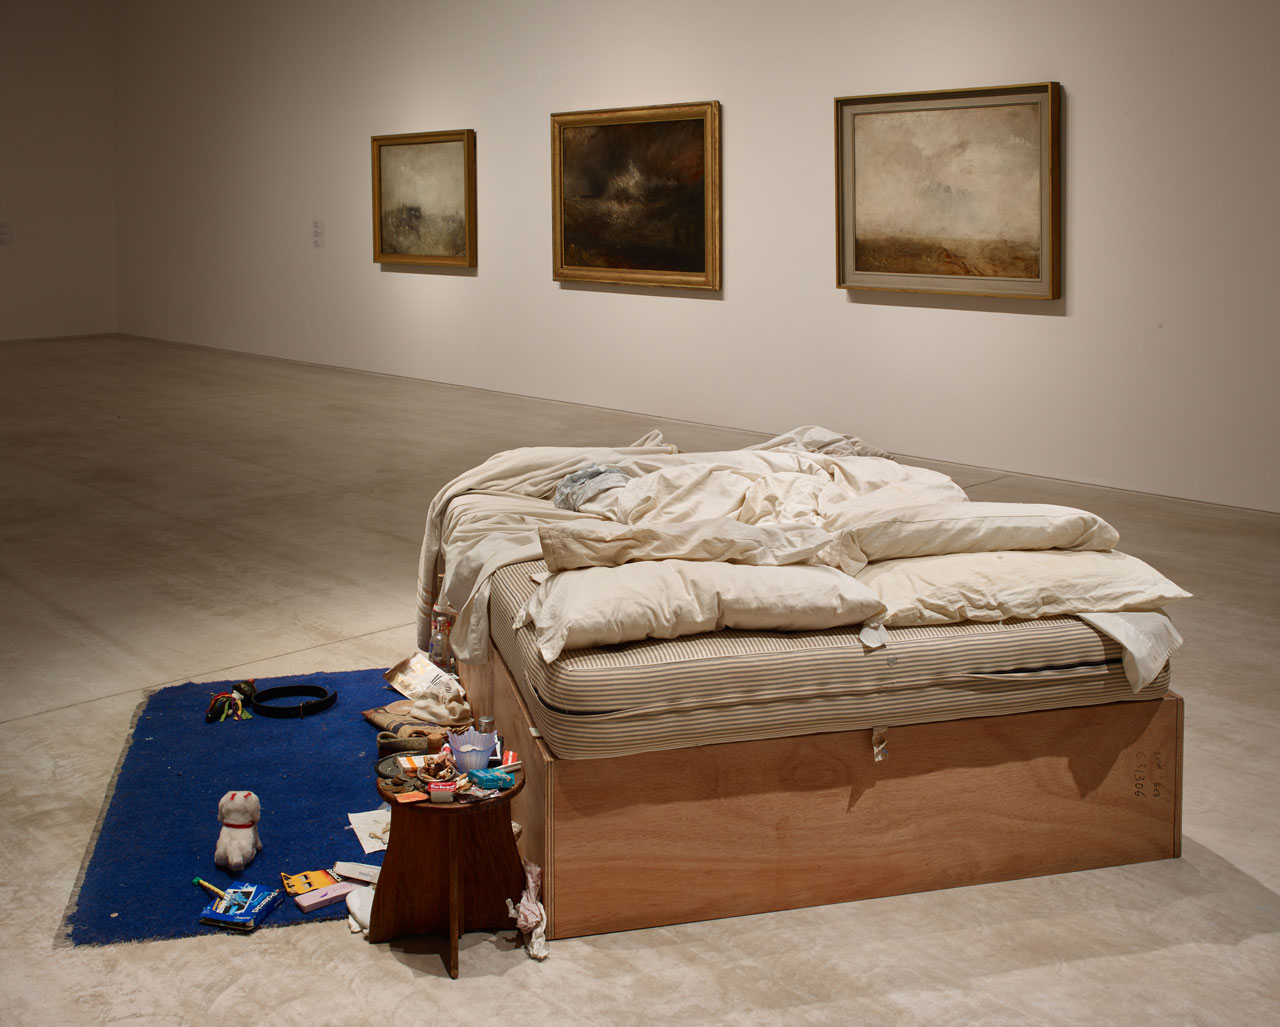 Installation view of Tracey Emin My Bed/JMW Turner at Turner Contemporary, Margate